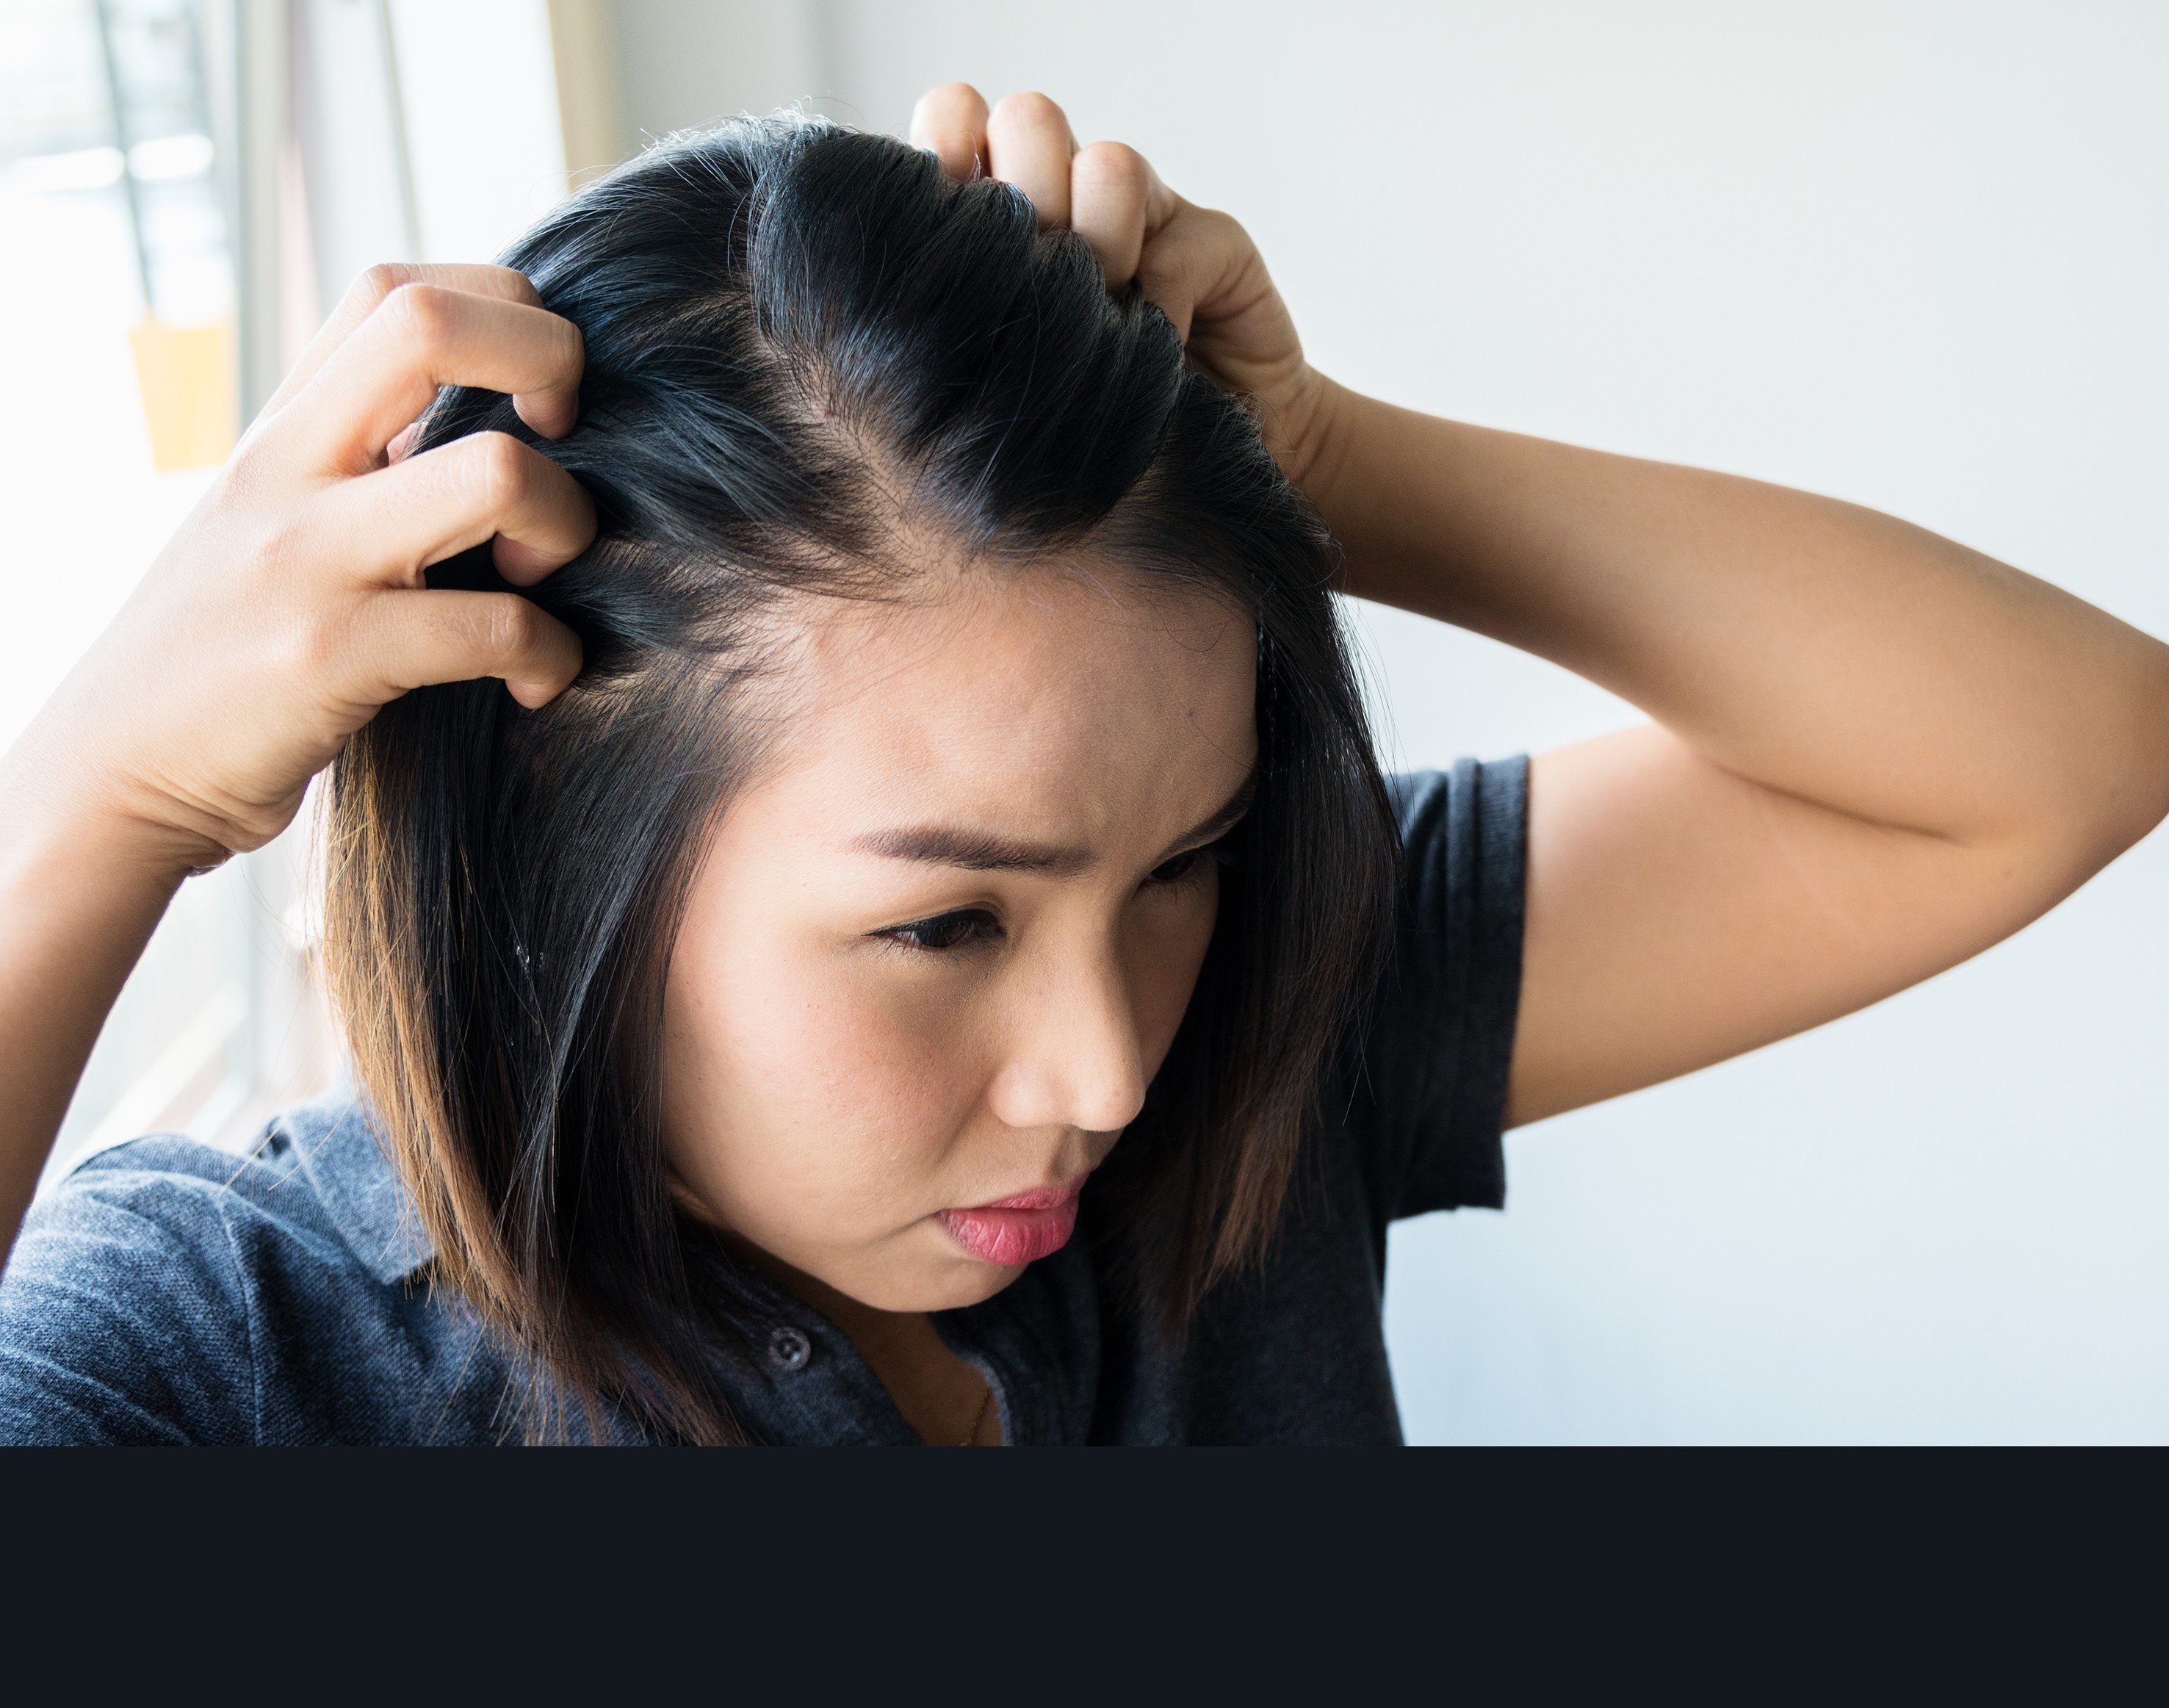 Hair loss: its causes, how to head it off and where to look for help